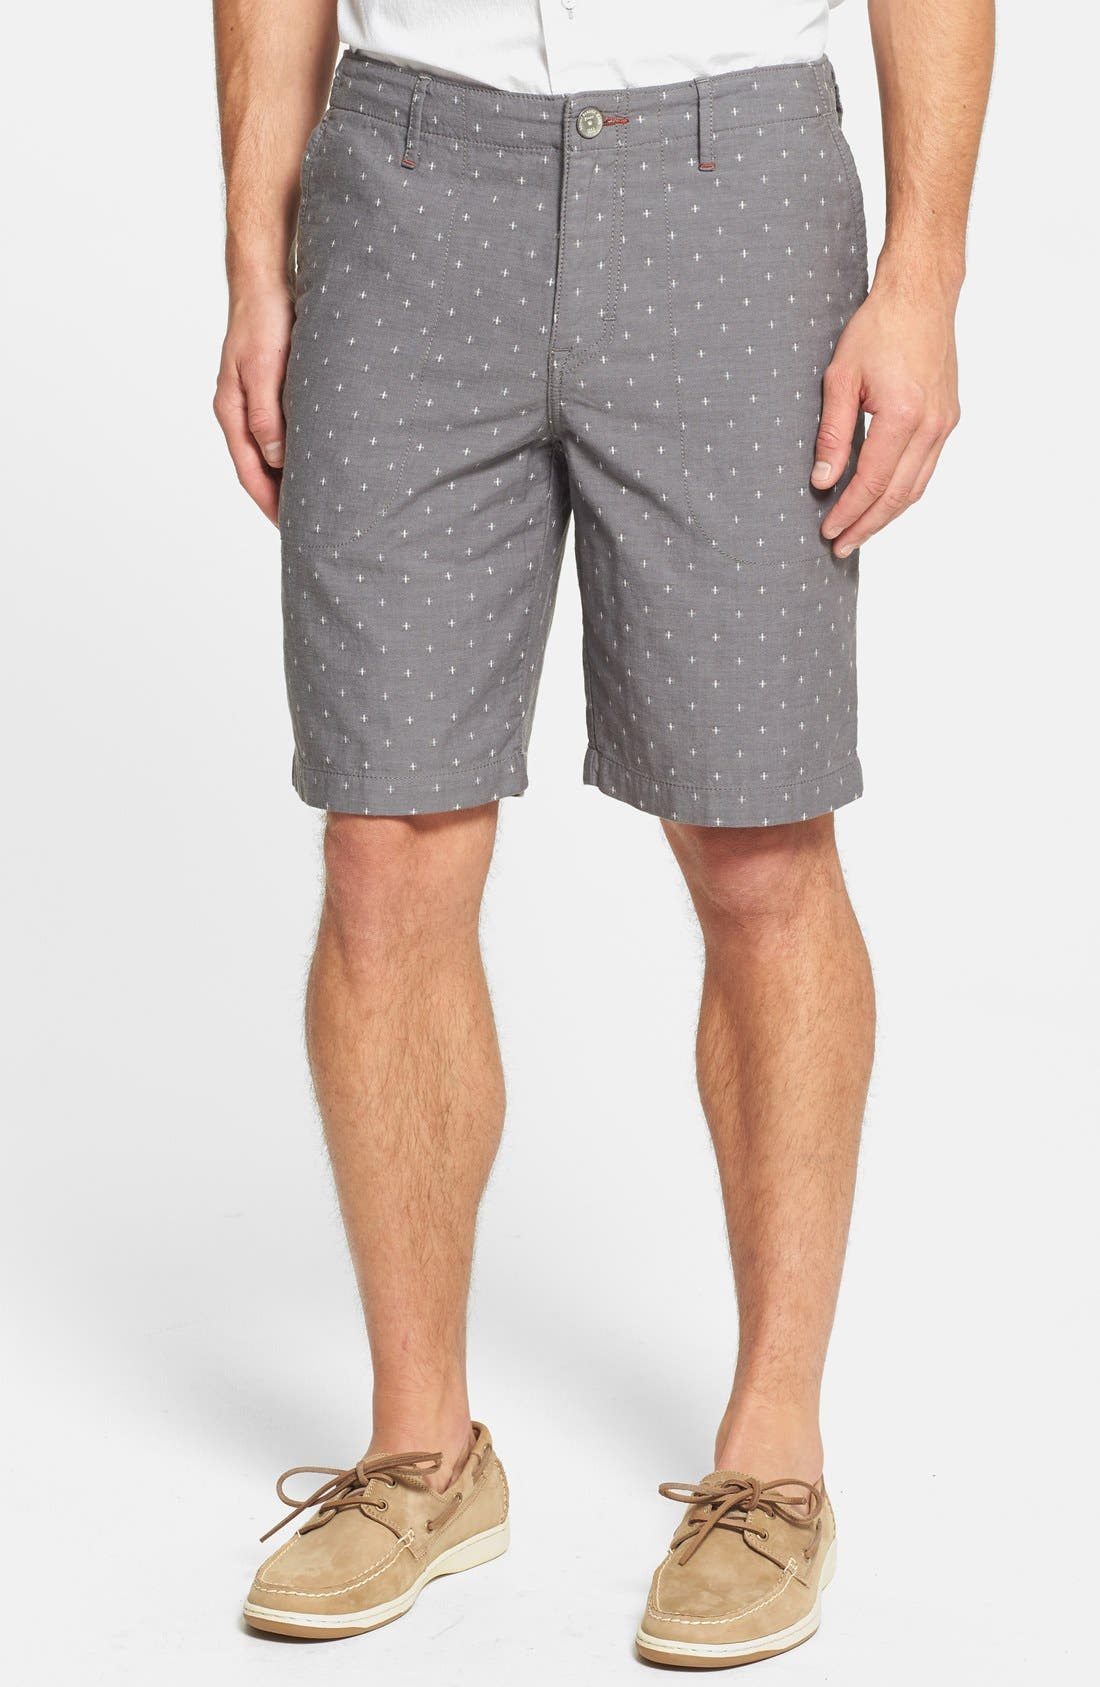 Alternate Image 1 Selected - Tommy Bahama Denim 'Off The Grid' Shorts